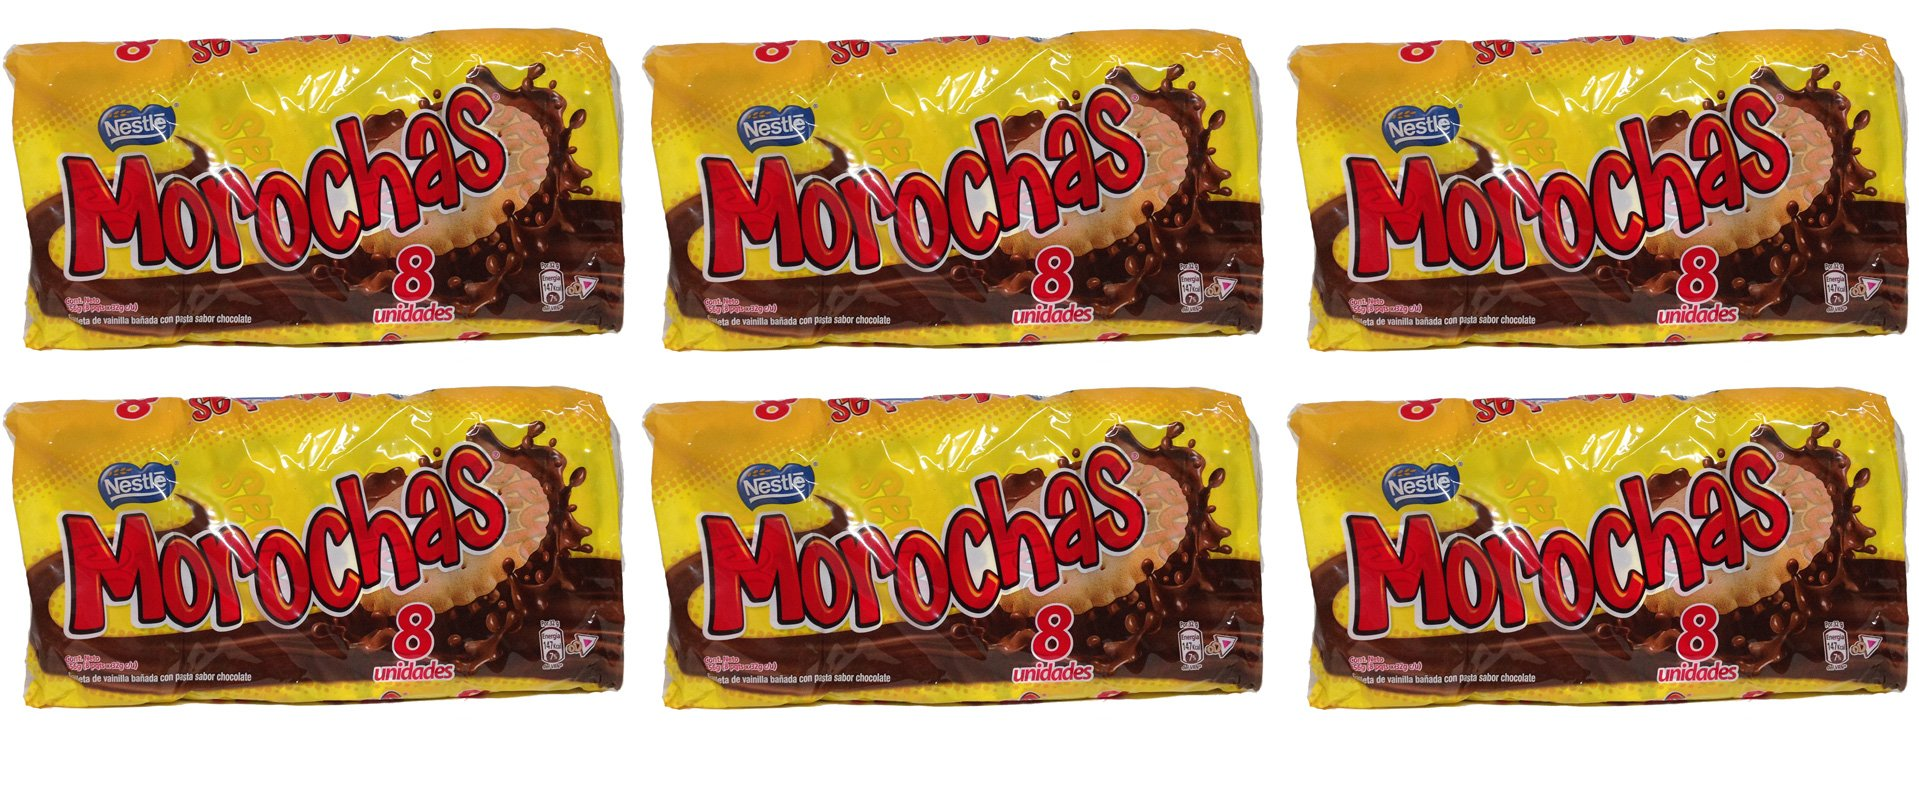 Morochas Galletas del Peru 6 Pack of 8 bags of 32 gr each